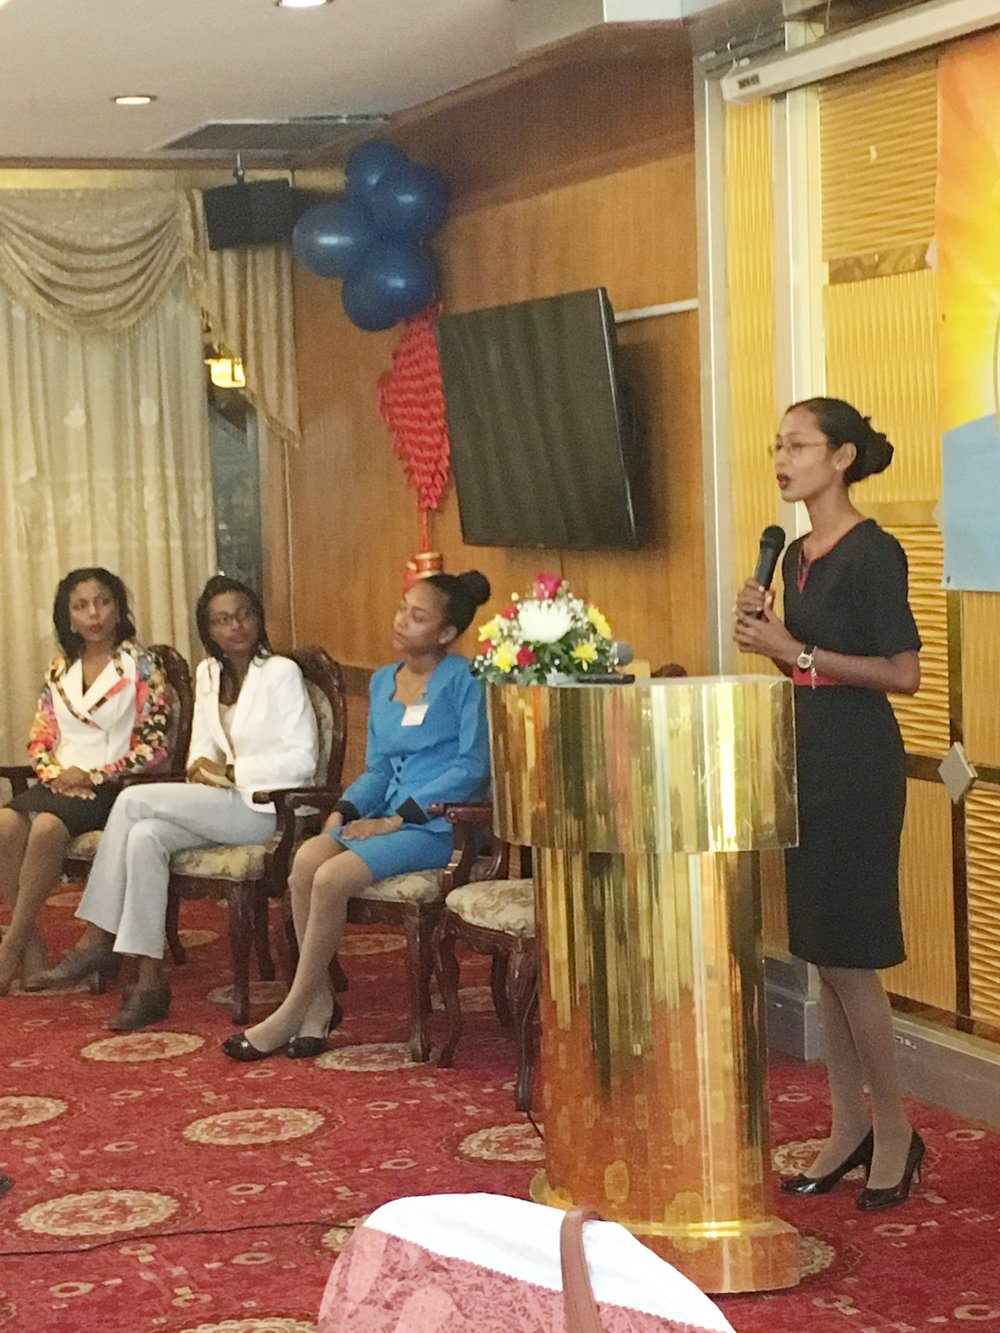 Candacie Calistro sharing her experiences. Sitting from left are the Child Crae Manager of the Sunrise Center, Madonna Paul, Nateefa John and Zohise Harris.